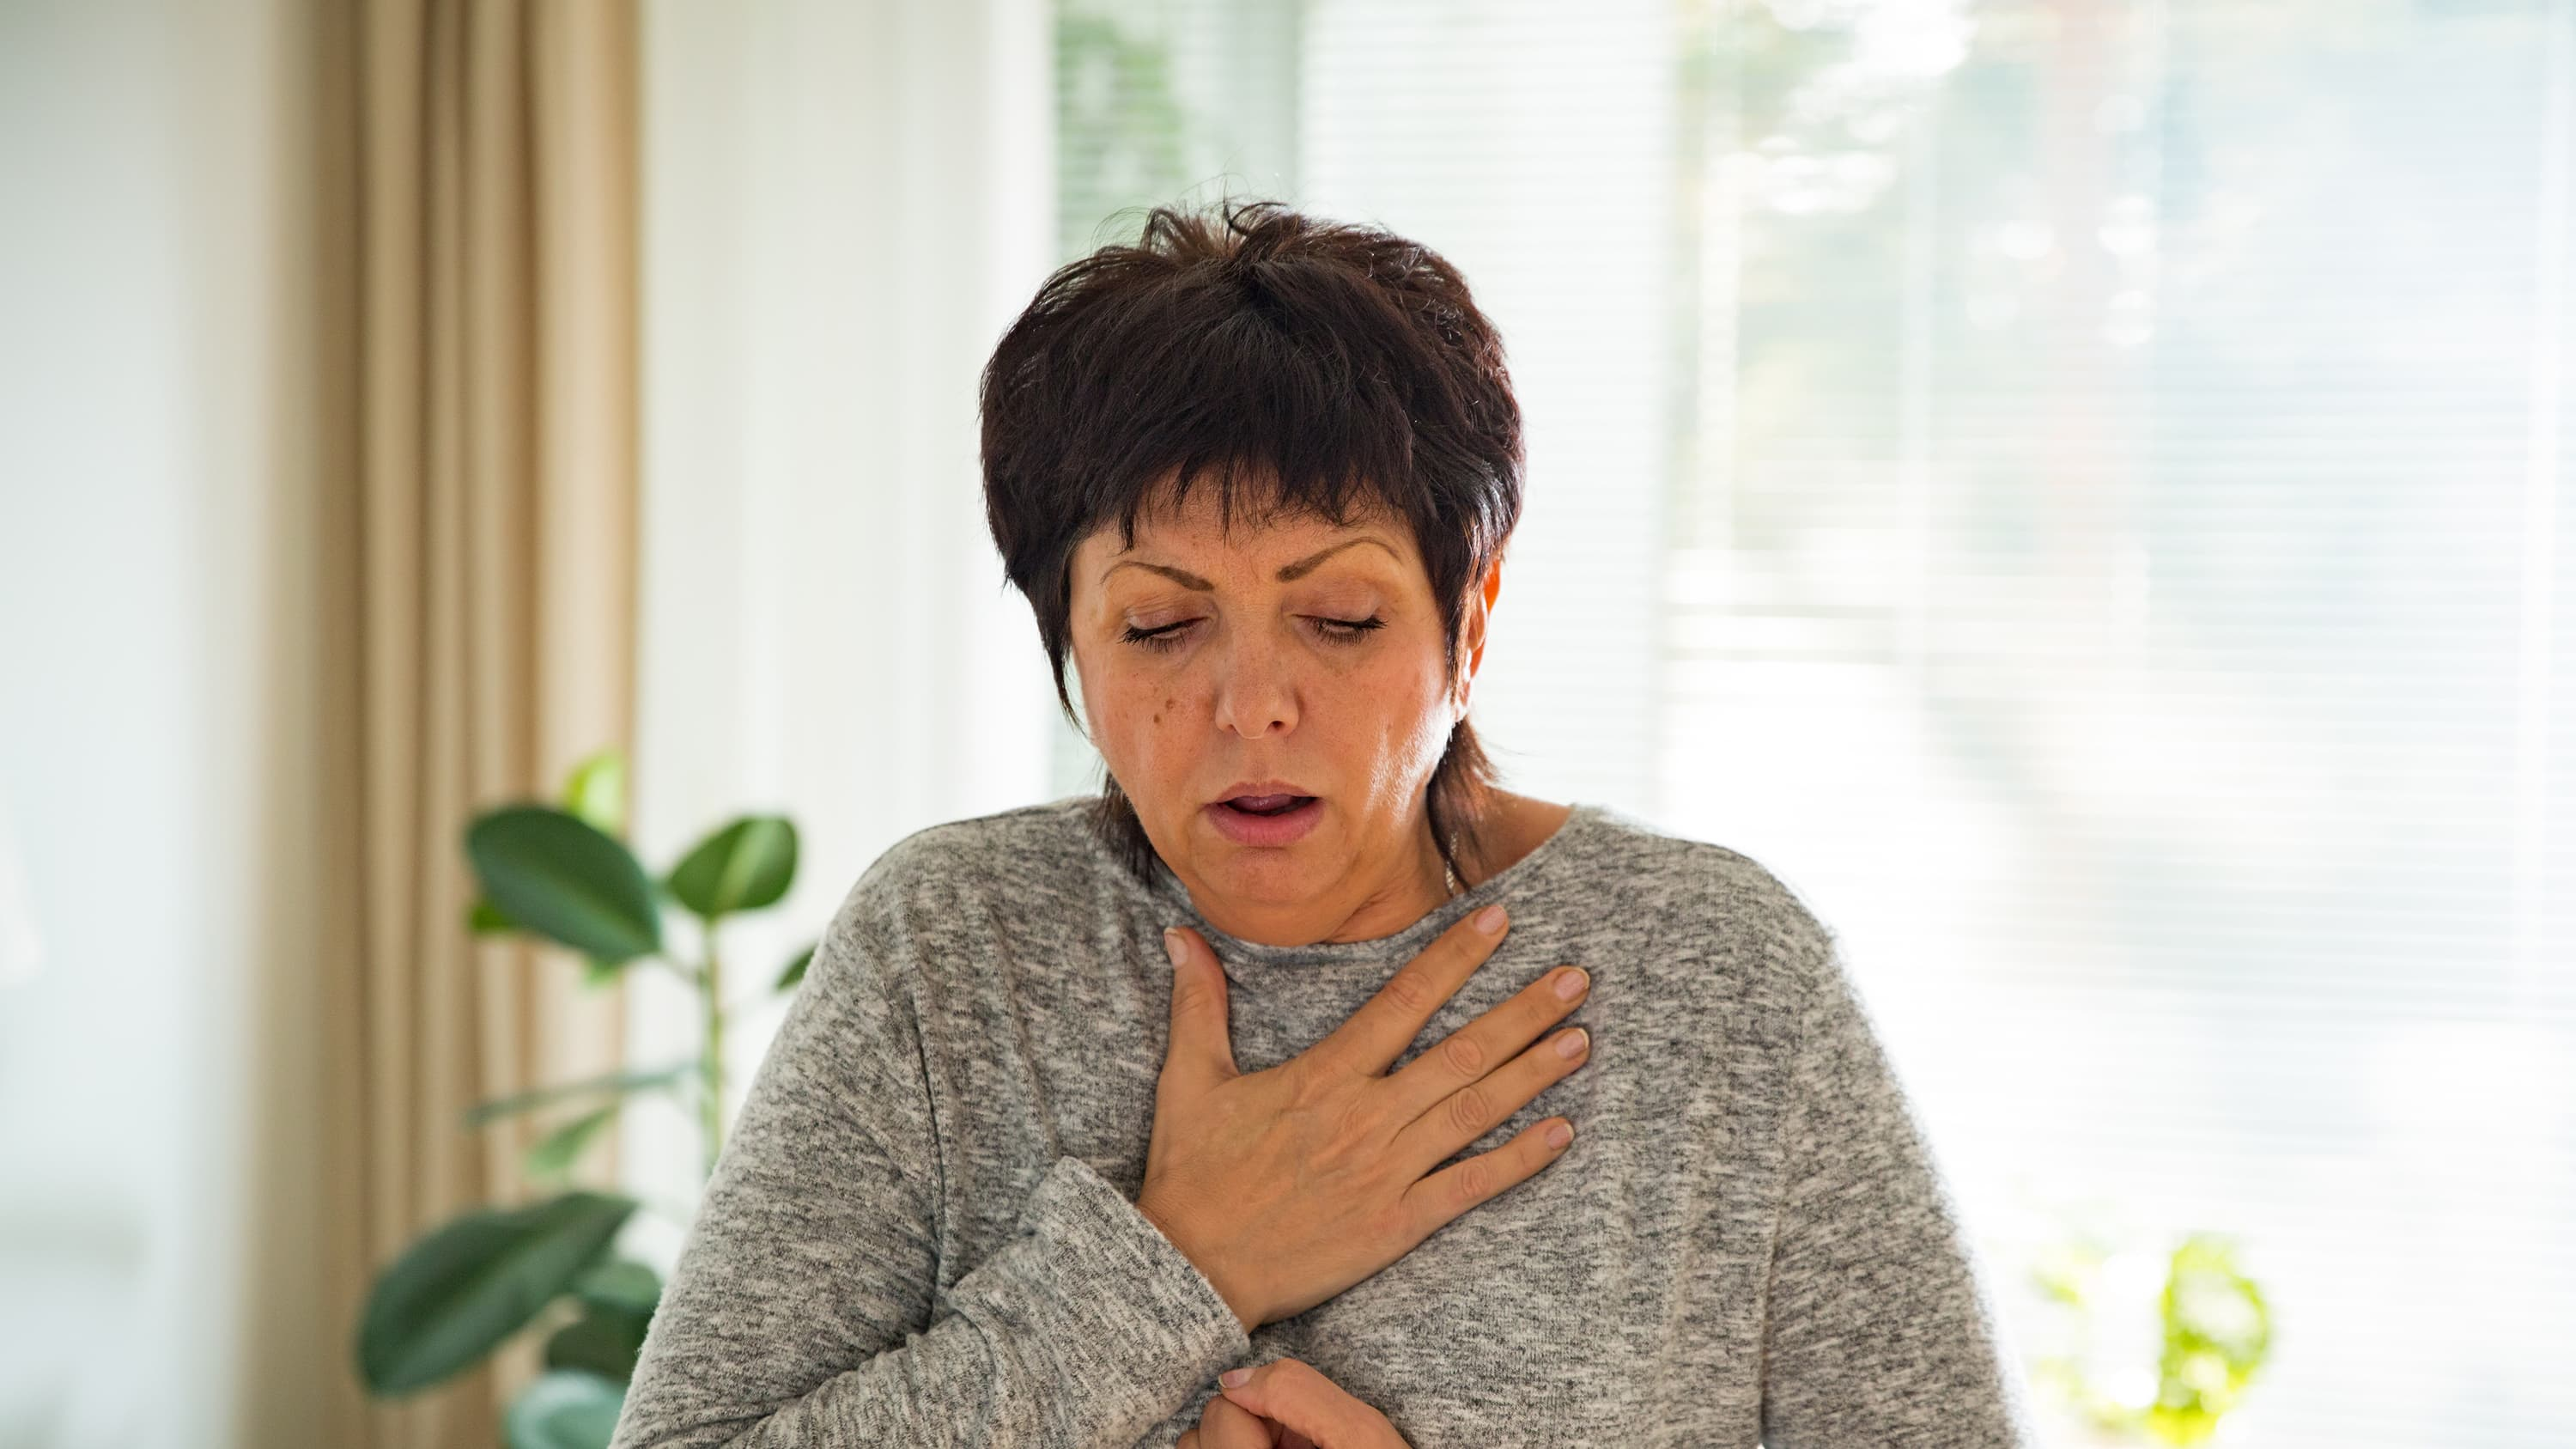 A woman suffering with dypnea struggling to breath.